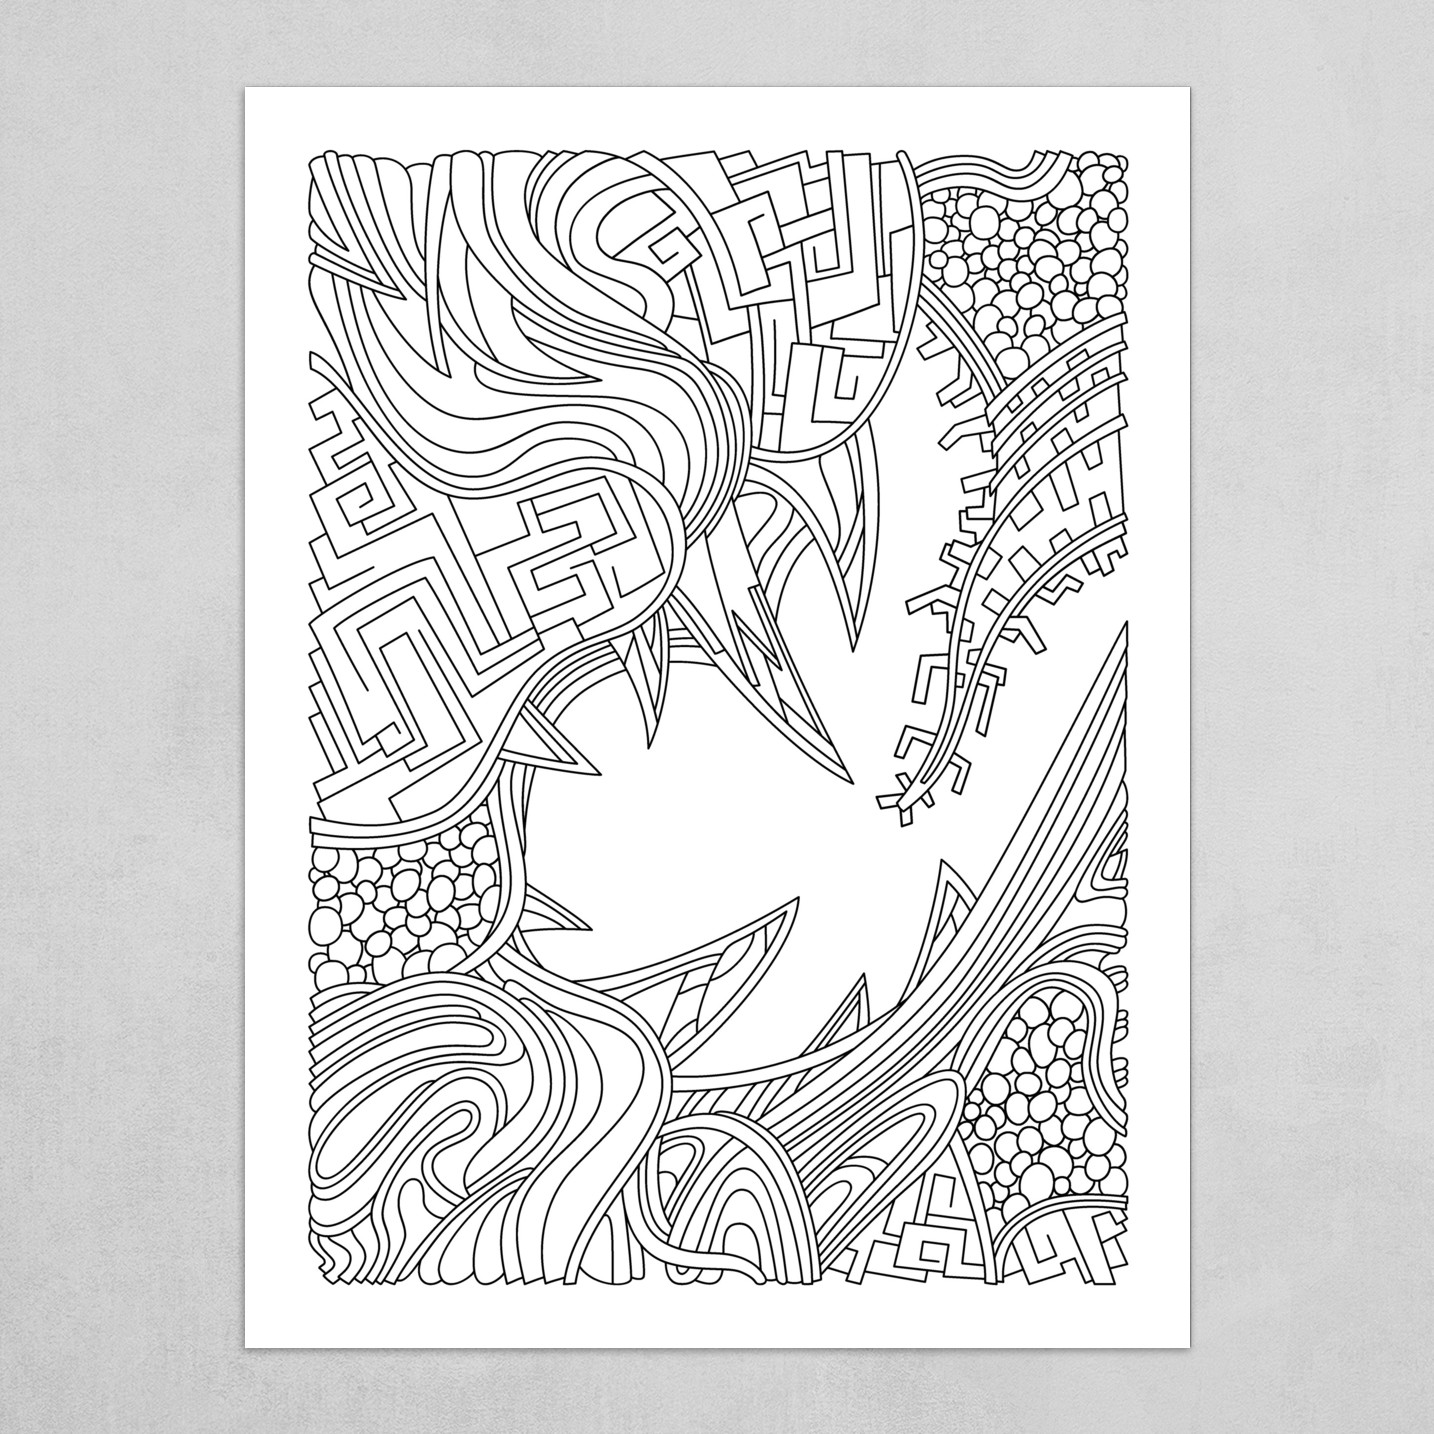 Wandering Abstract Line Art 39: Black & White